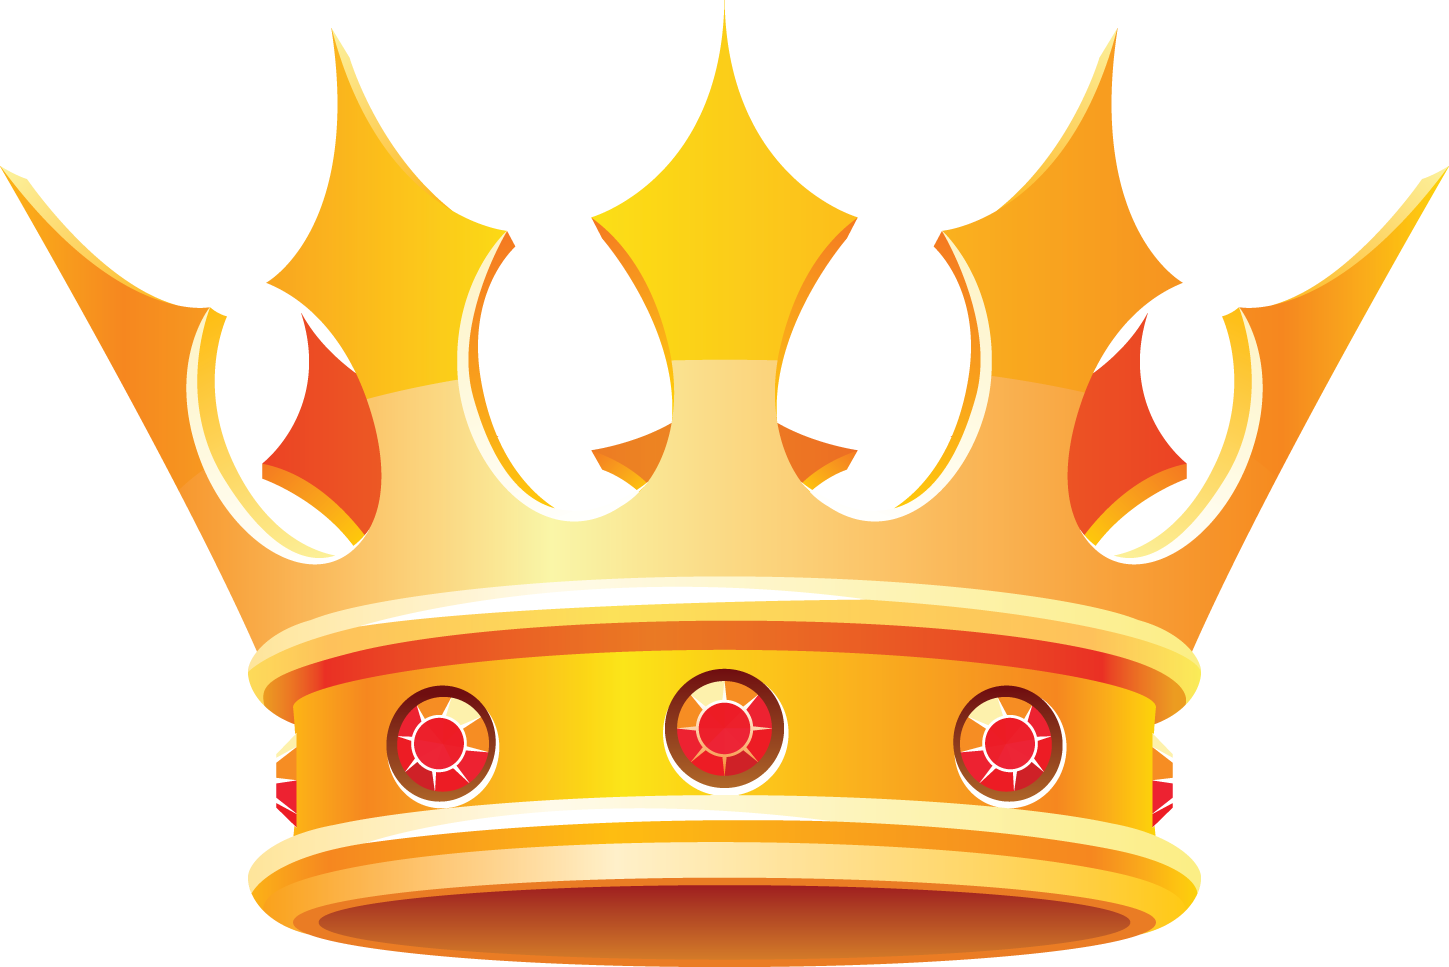 Crowns clipart pastel. King queen crown clip